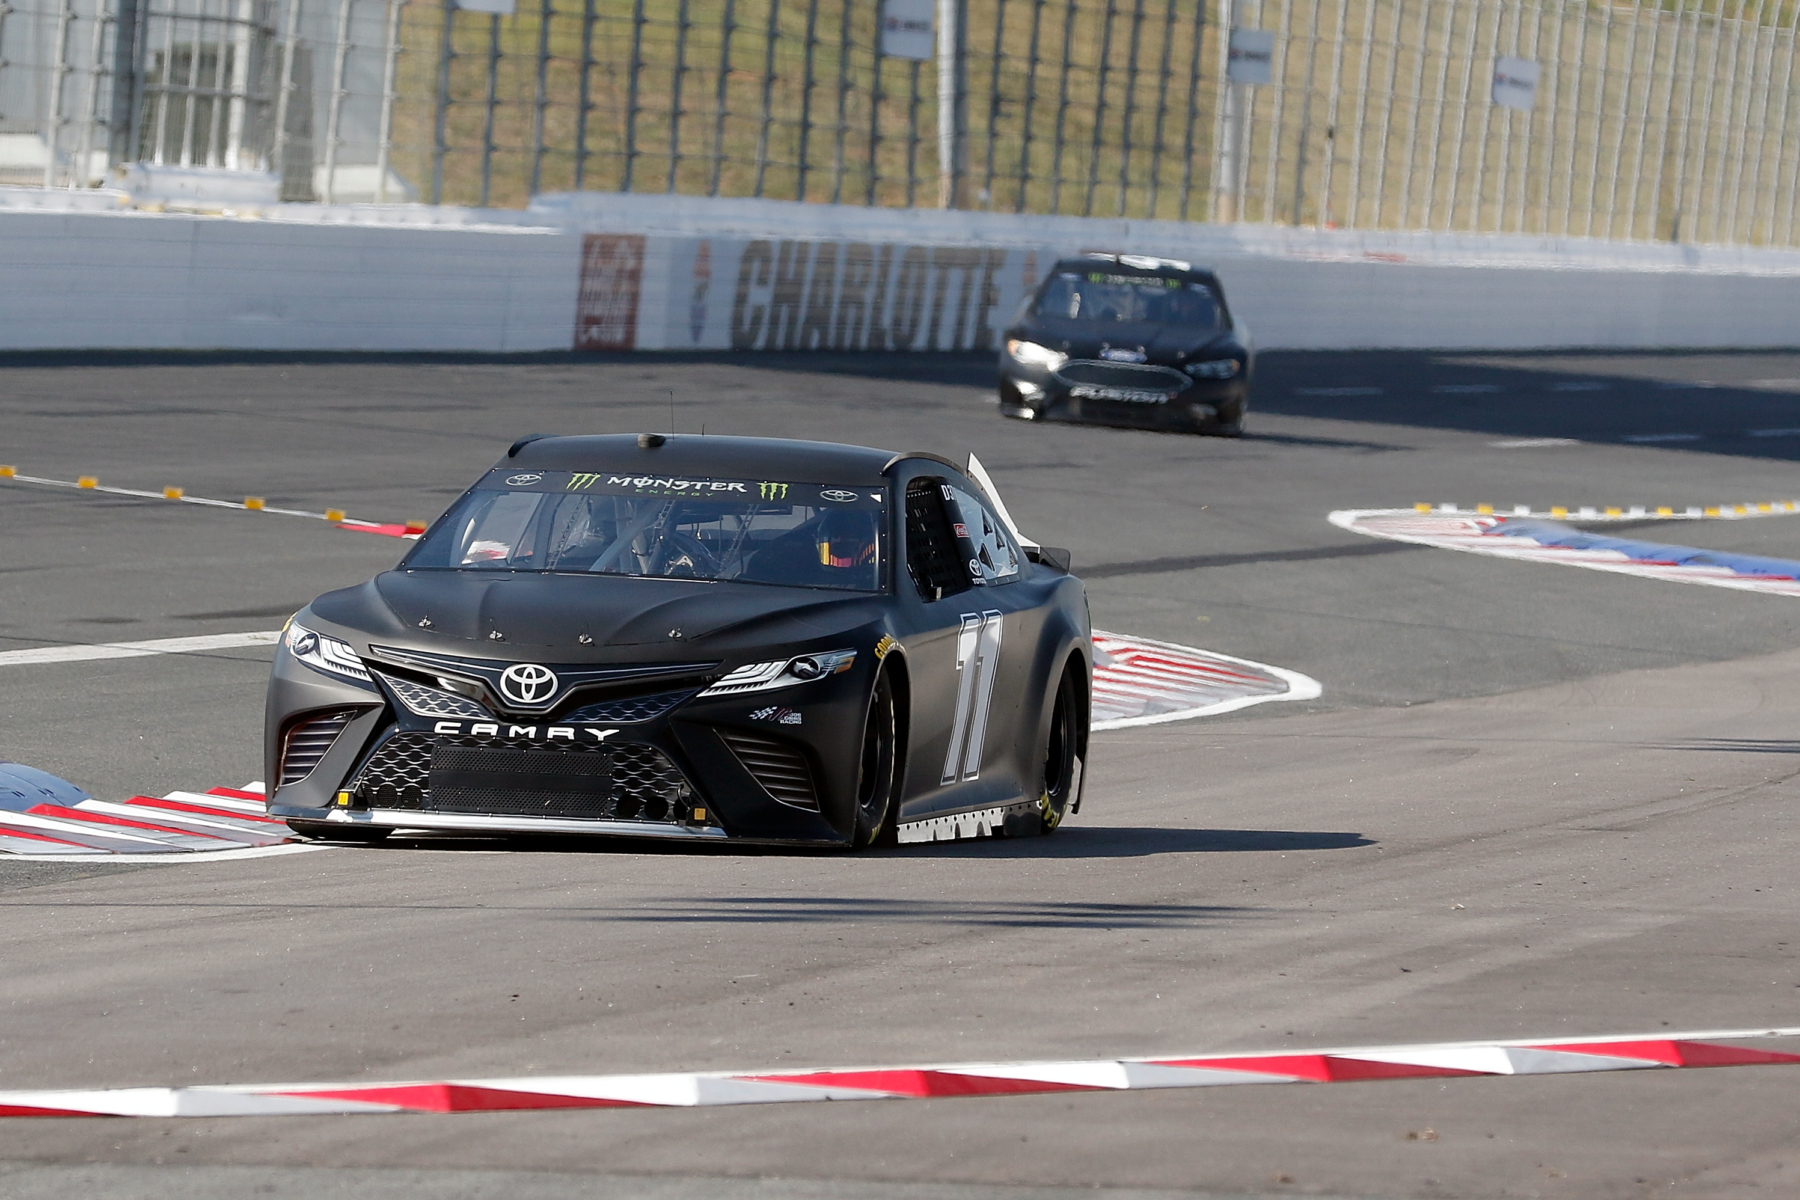 Charlotte Roval Chicane